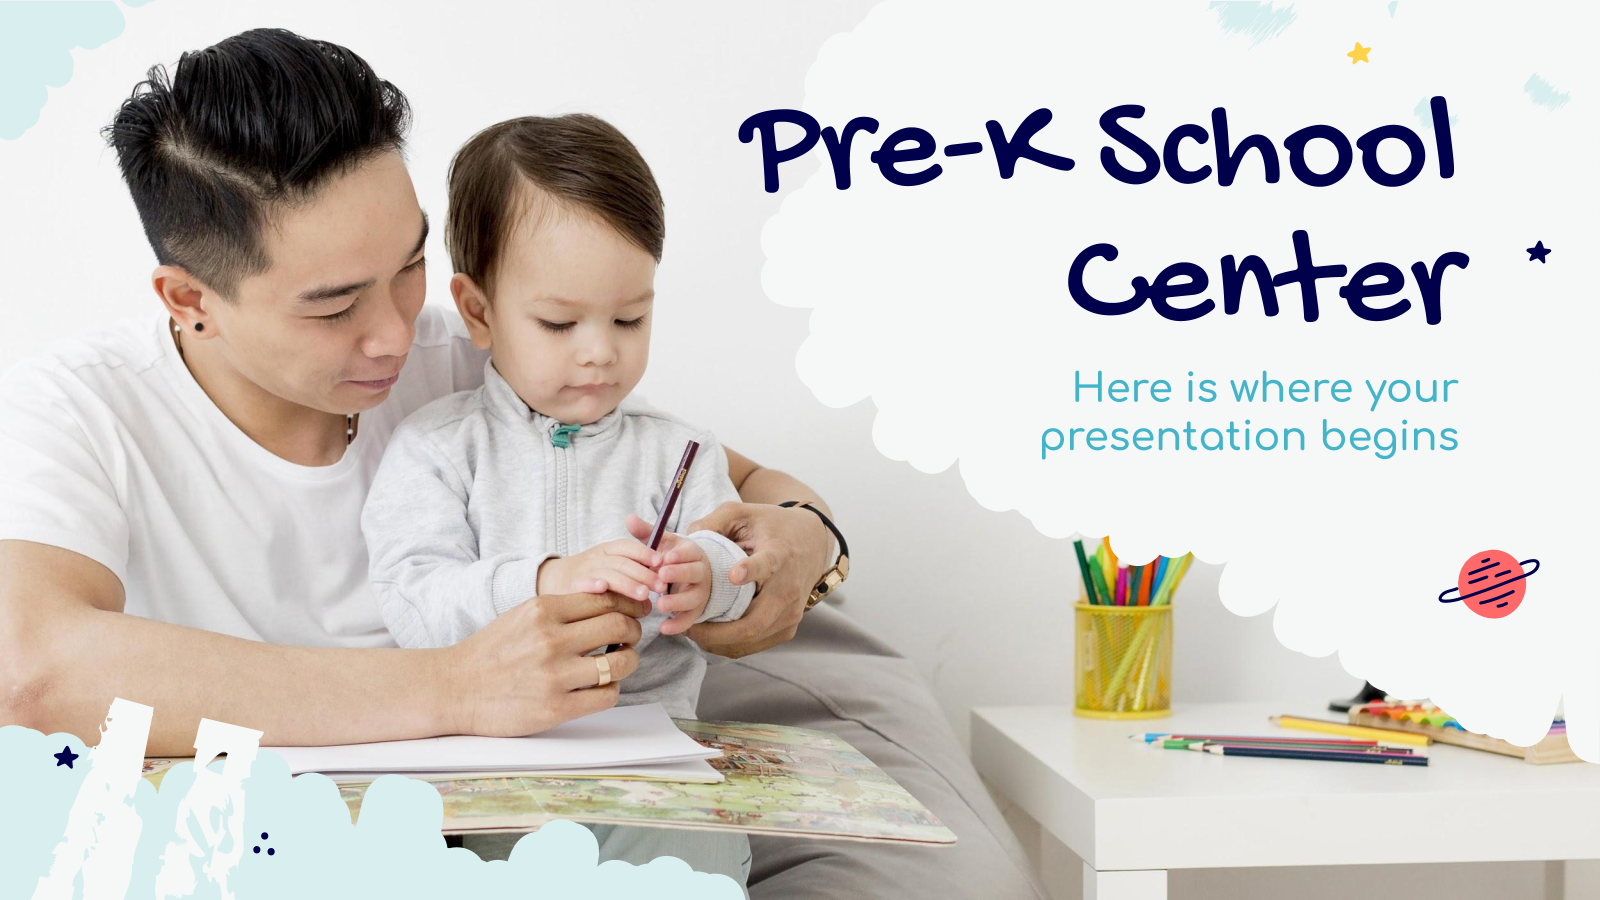 Pre-K School Center presentation template